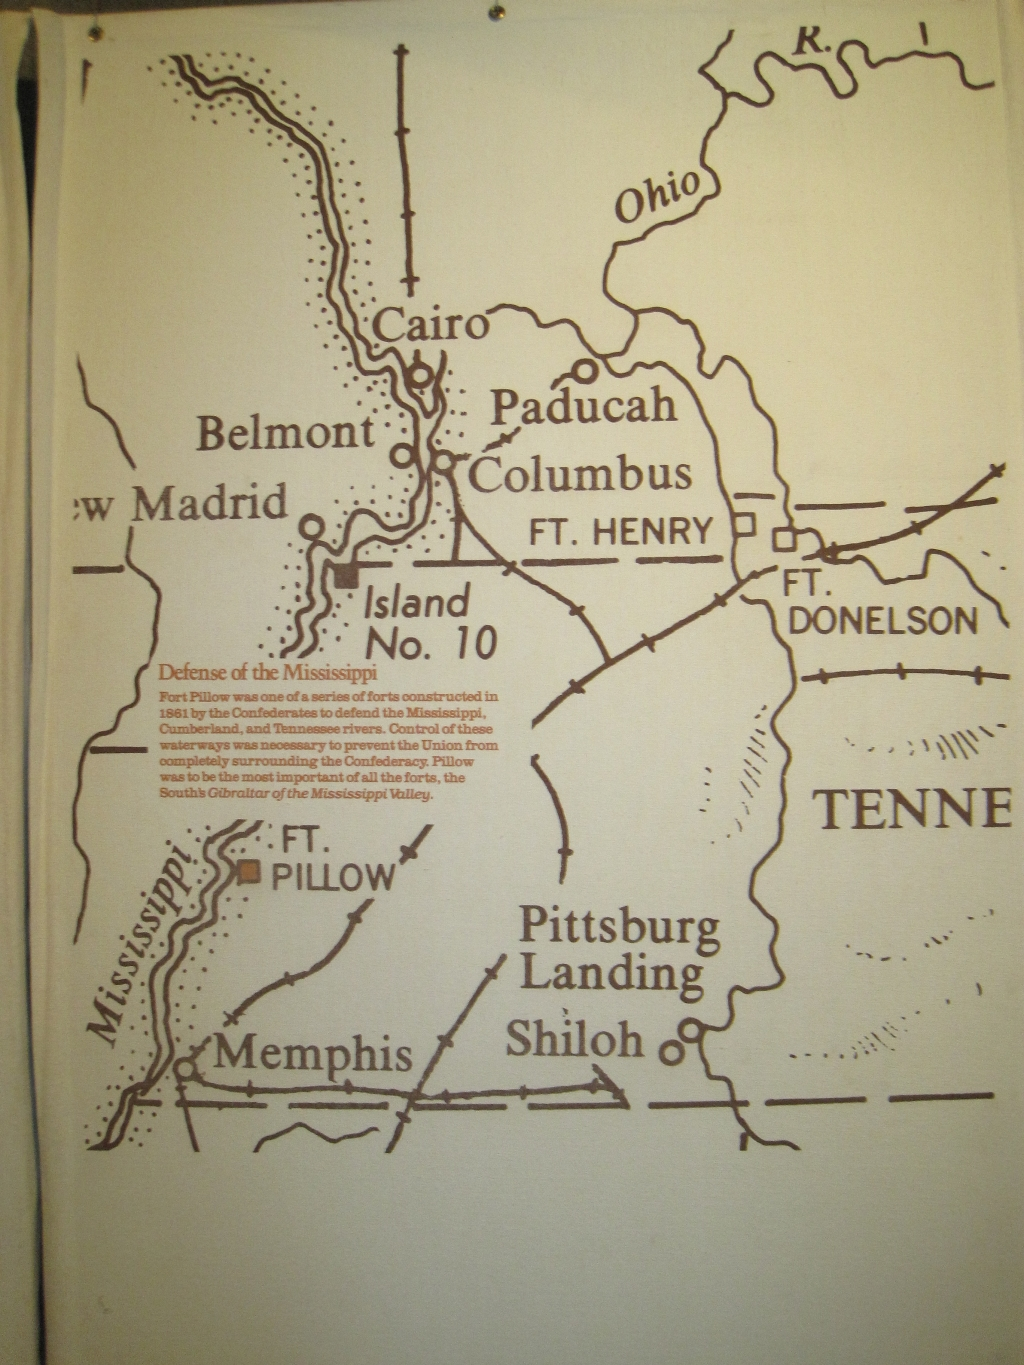 State Parks Tennessee Map.File Fort Pillow State Park Tn 09 Museum Map Defense Of The